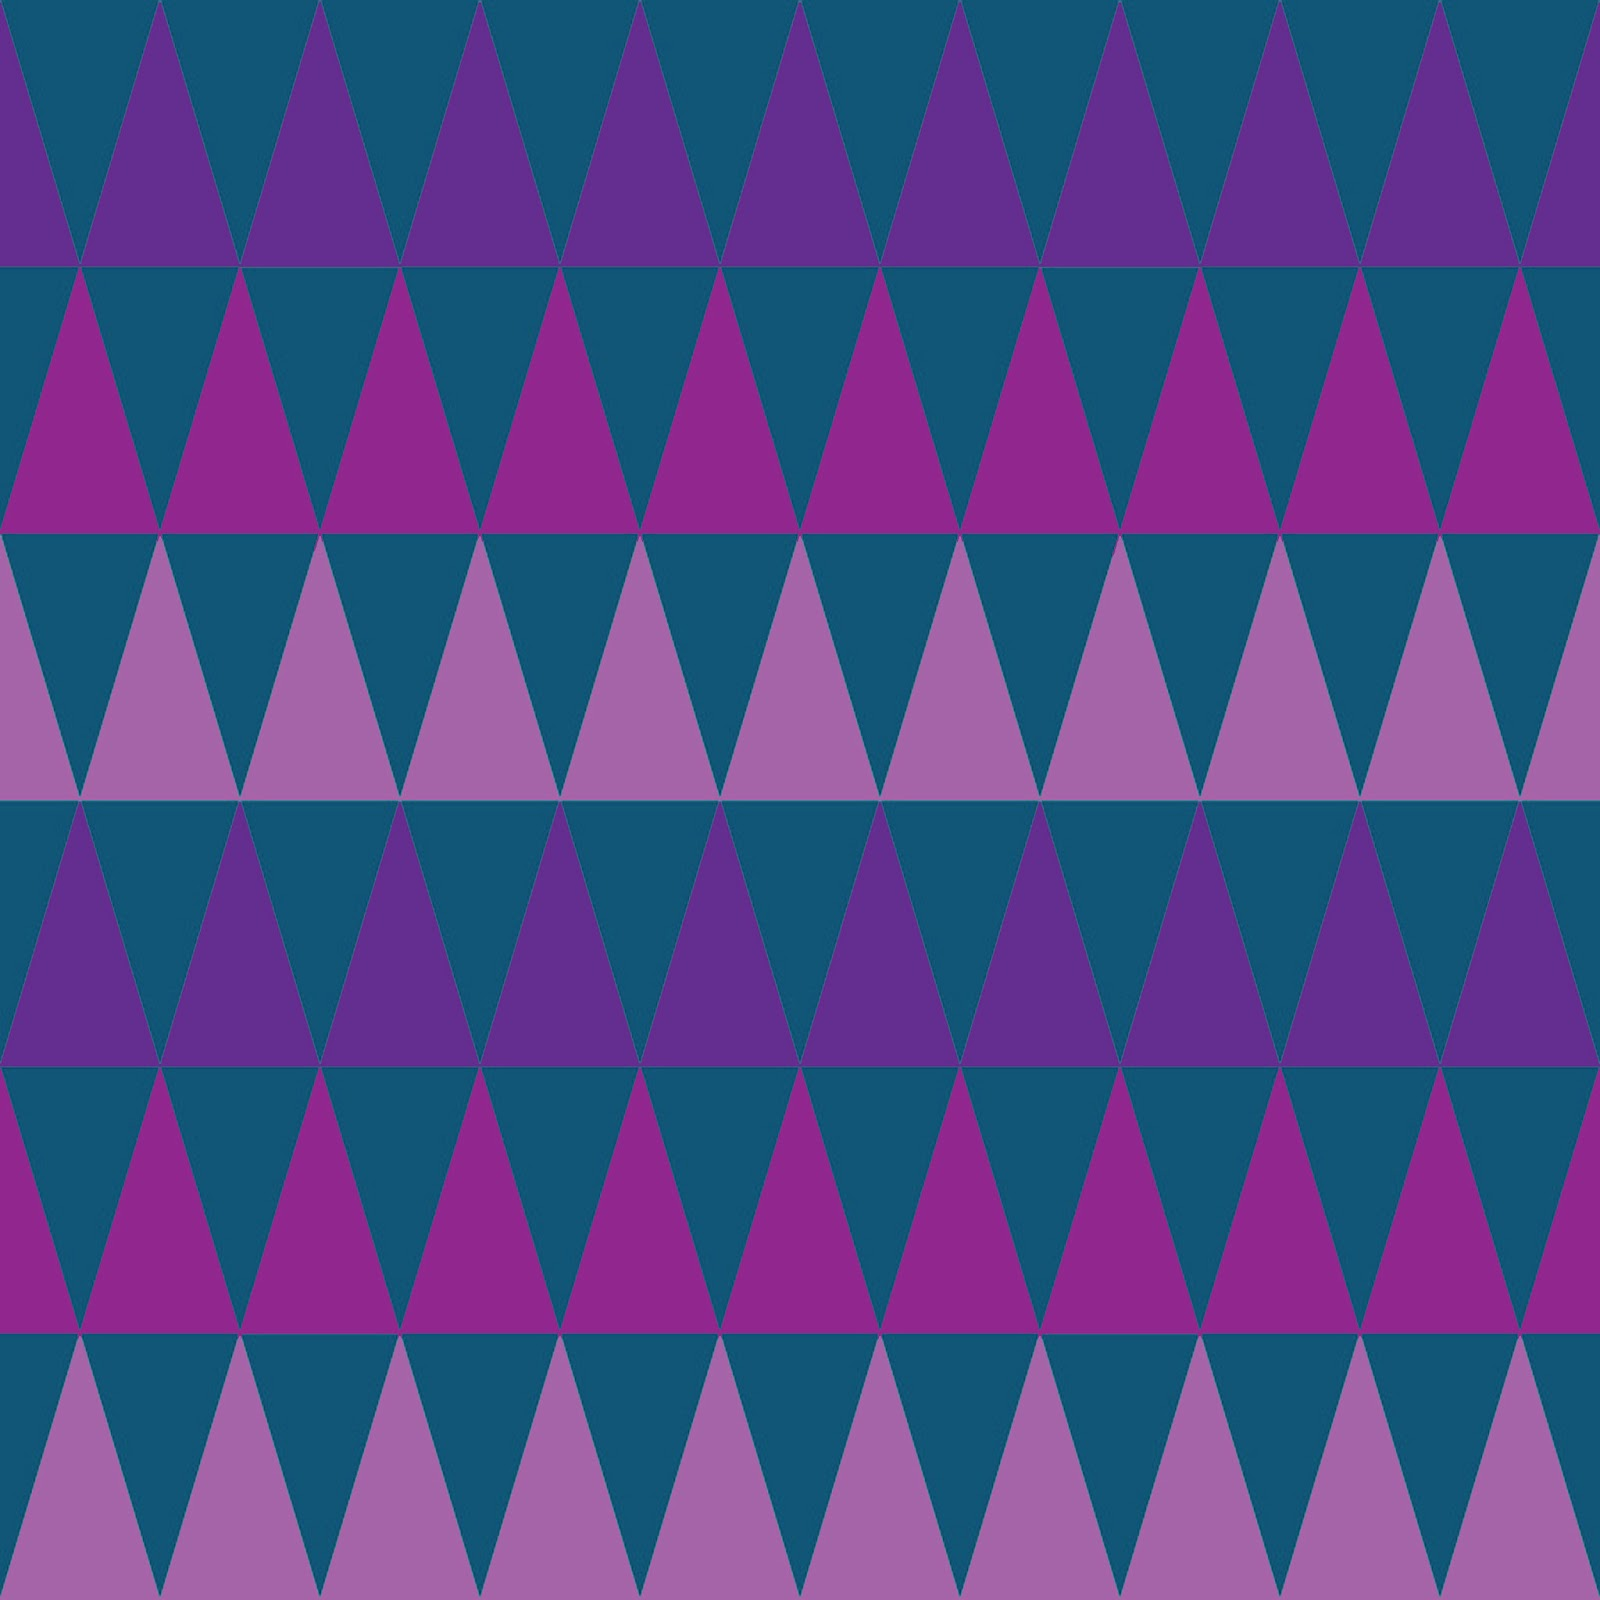 Triangle pattern backgrounds tumblr